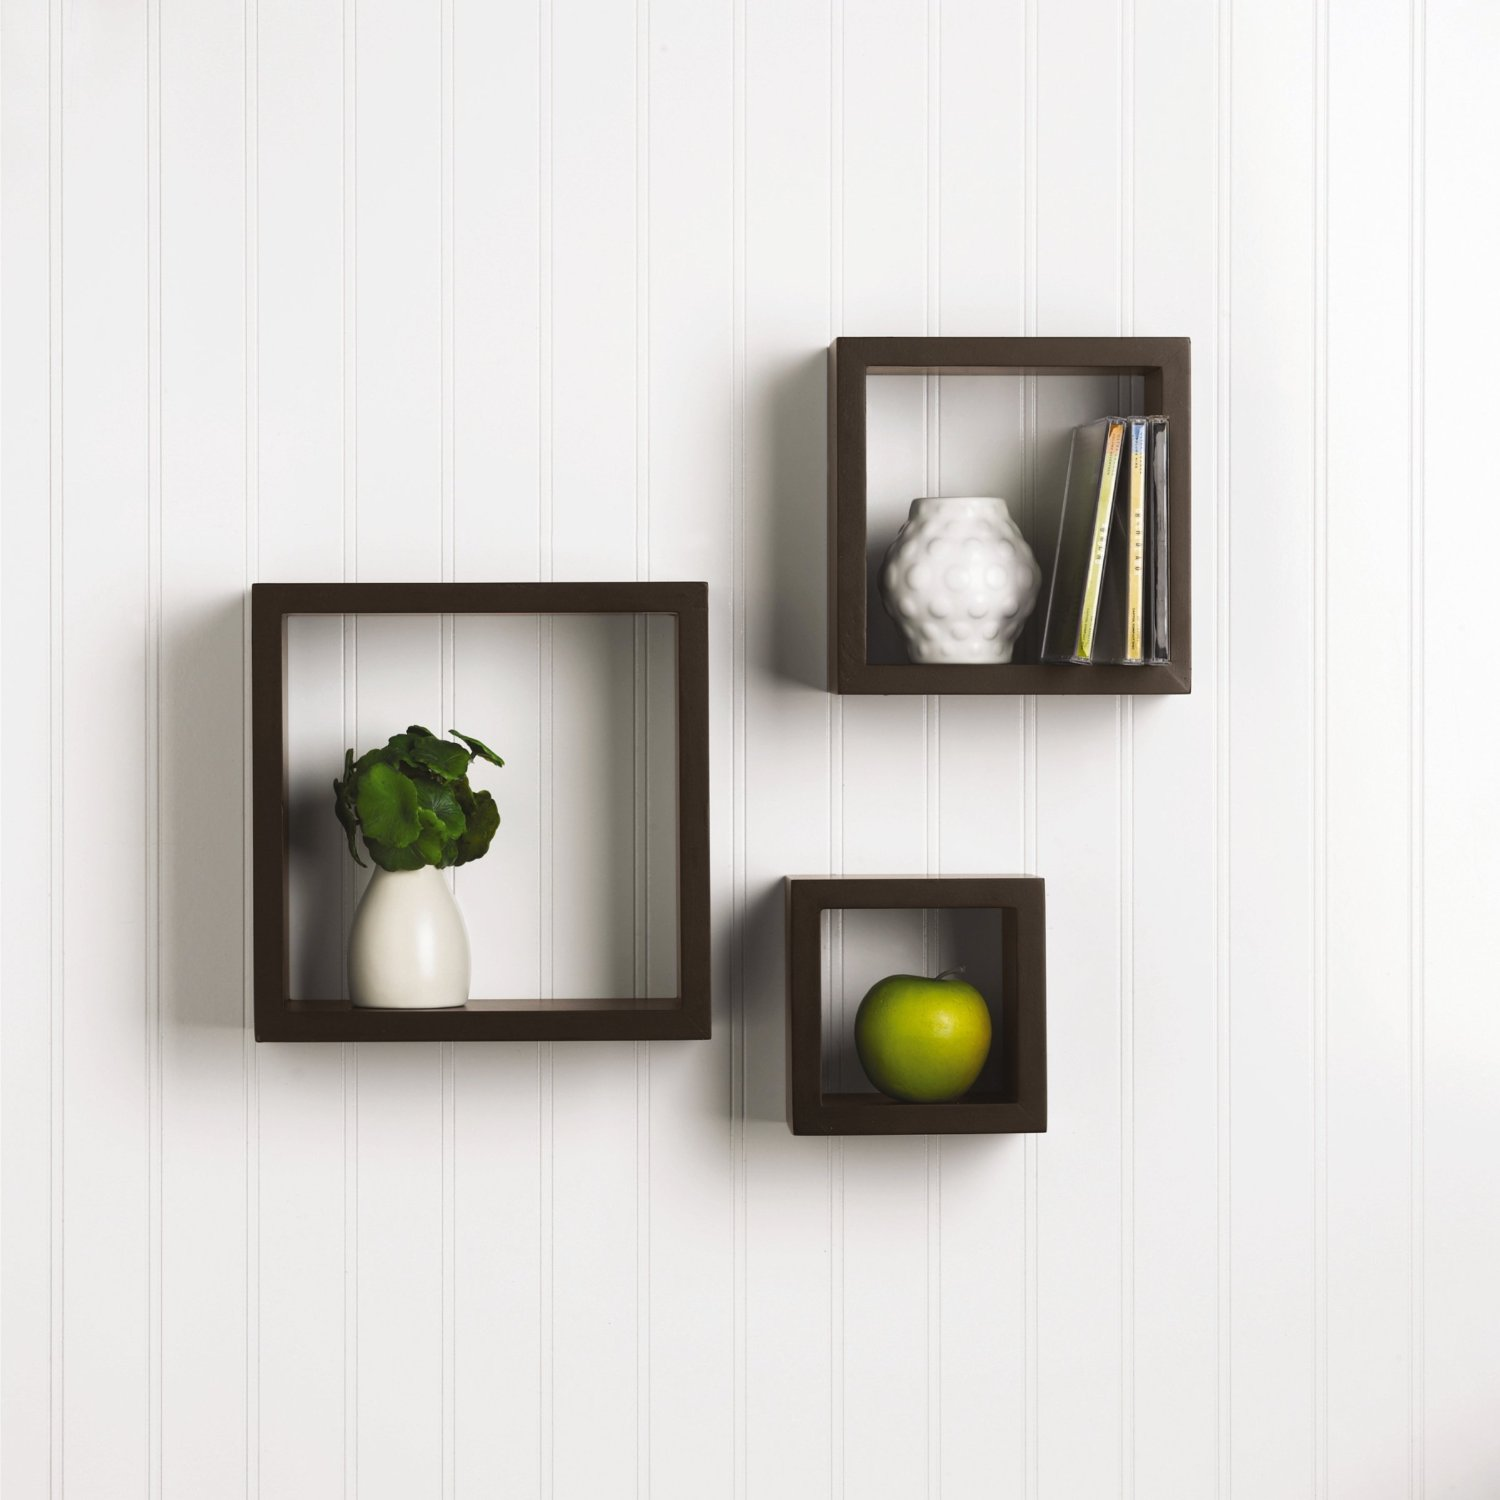 Home Depot Decorative Shelving